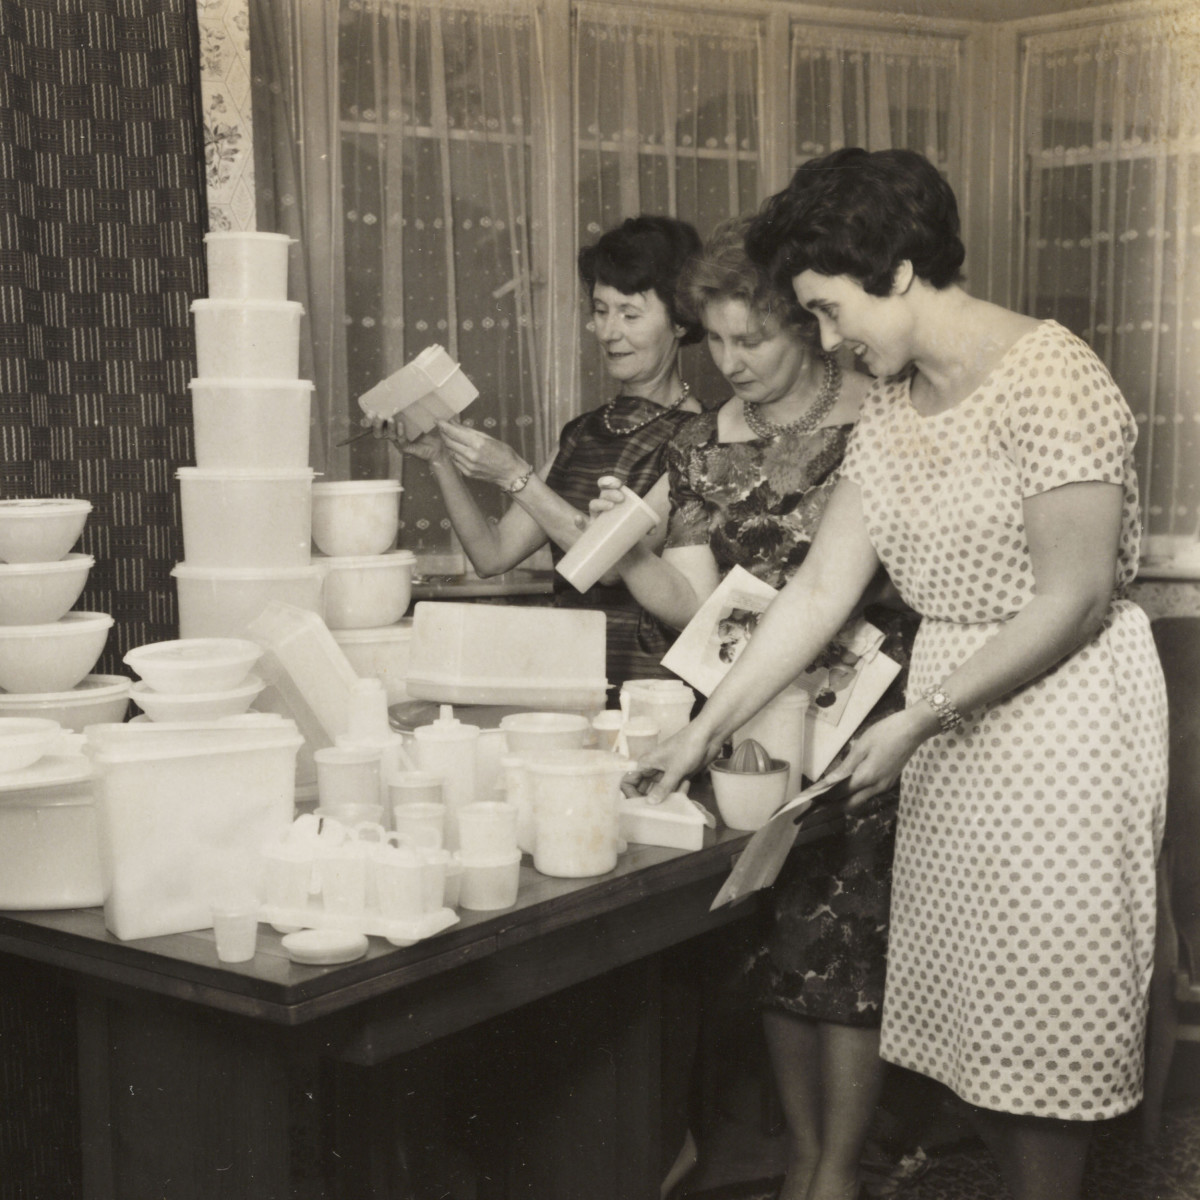 Tupperware was developed by an American, Earl Tupper, in the mid 1940s. Tupperware Parties' in the 50s and 60s were a way of marketing the product directly to women.